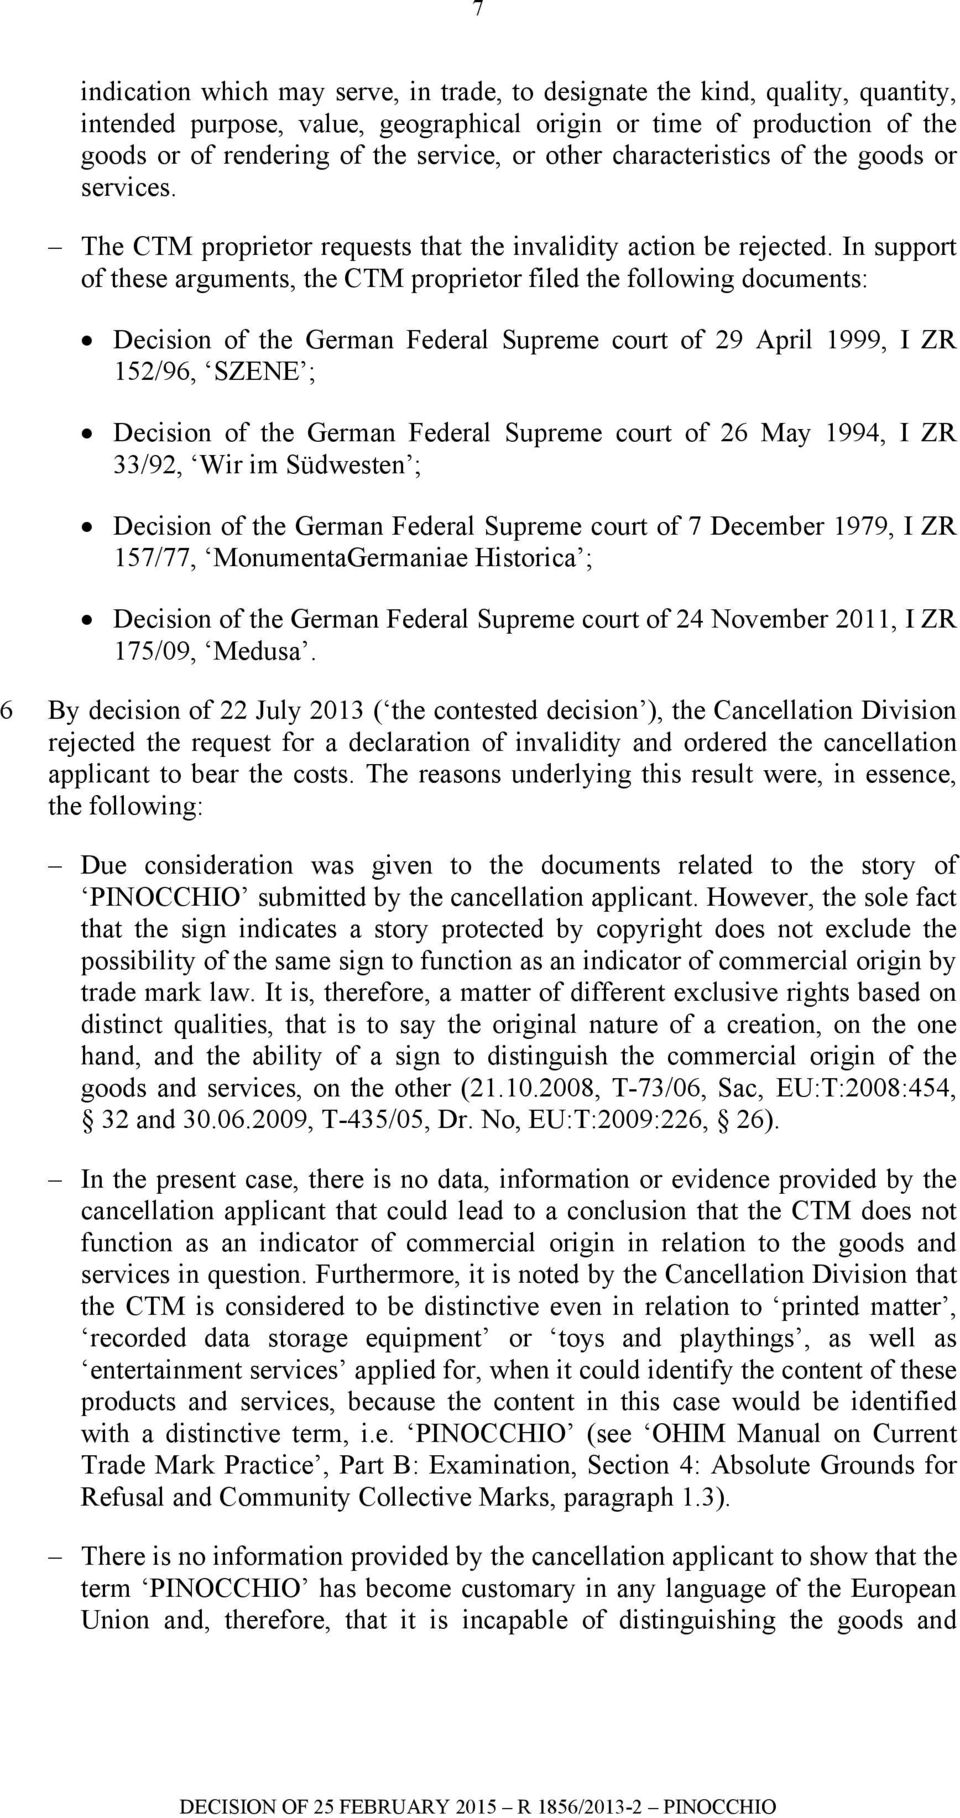 In support of these arguments, the CTM proprietor filed the following documents: Decision of the German Federal Supreme court of 29 April 1999, I ZR 152/96, SZENE ; Decision of the German Federal